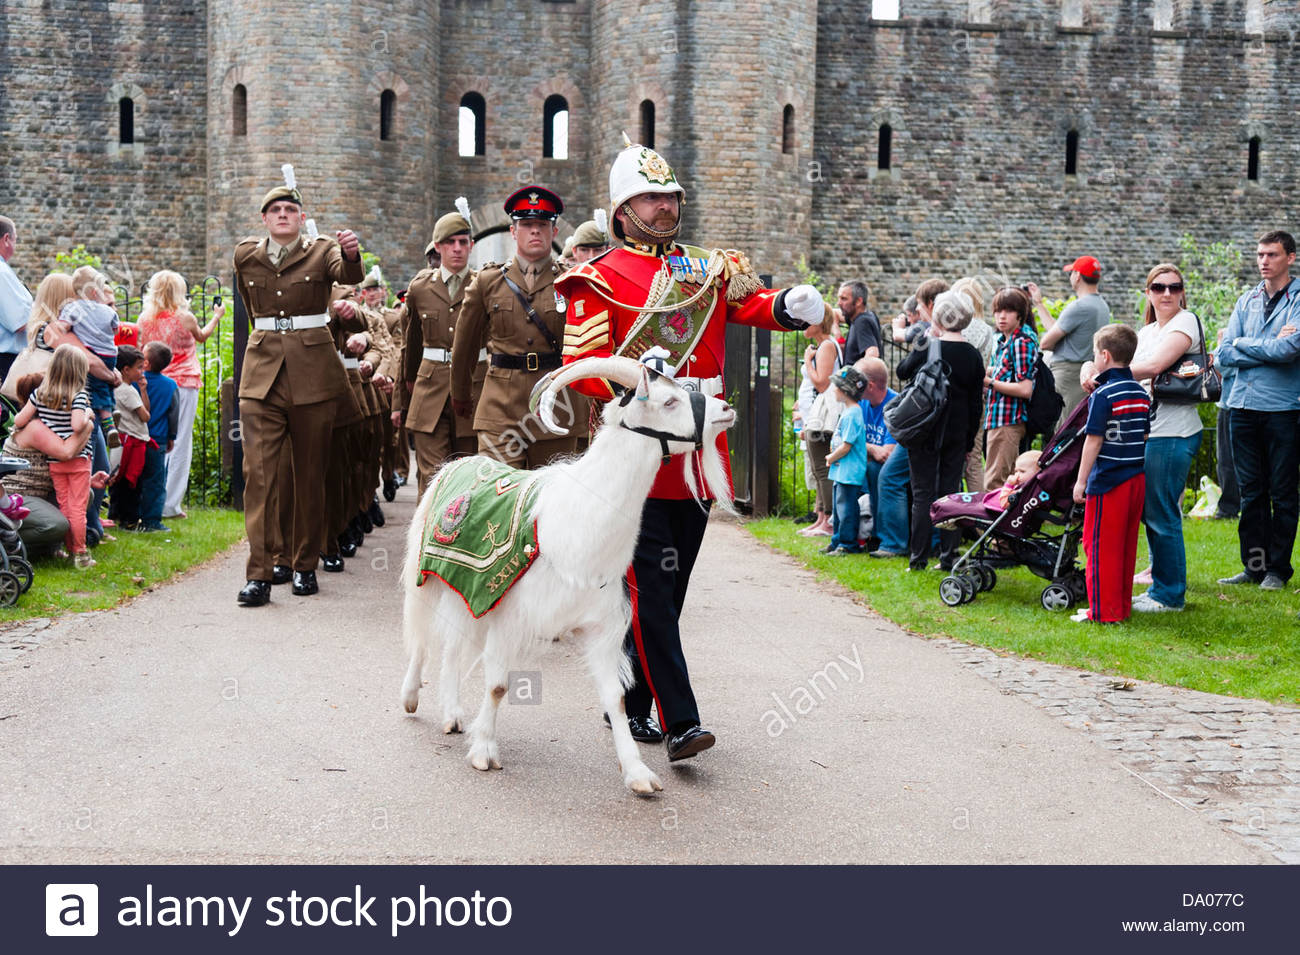 Armed Forces Day 2013 at Cardiff, Wales, UK. 2nd Battalion mascot white goat marching out of Cardiff Castle. - Stock Image